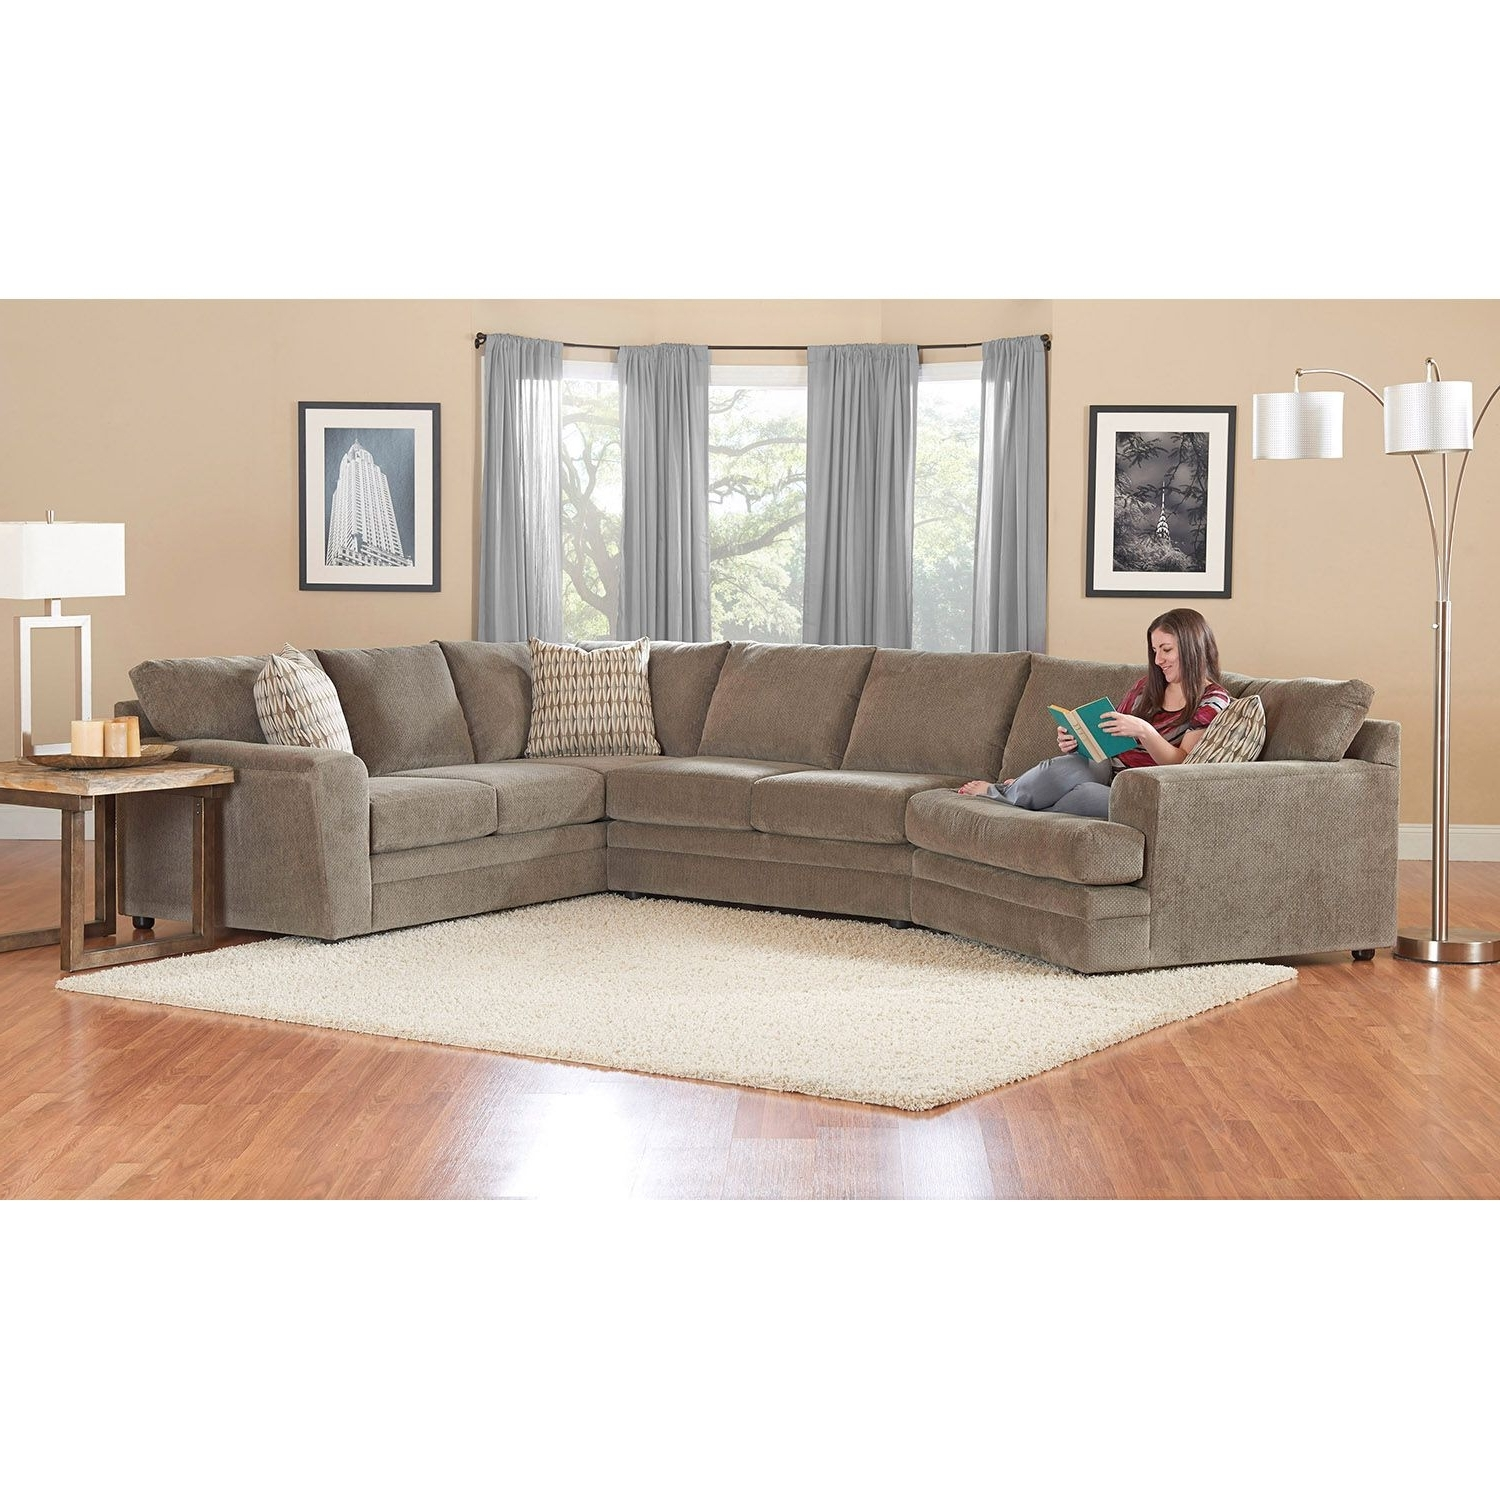 Featured Photo of Sectional Sofas At Sam's Club